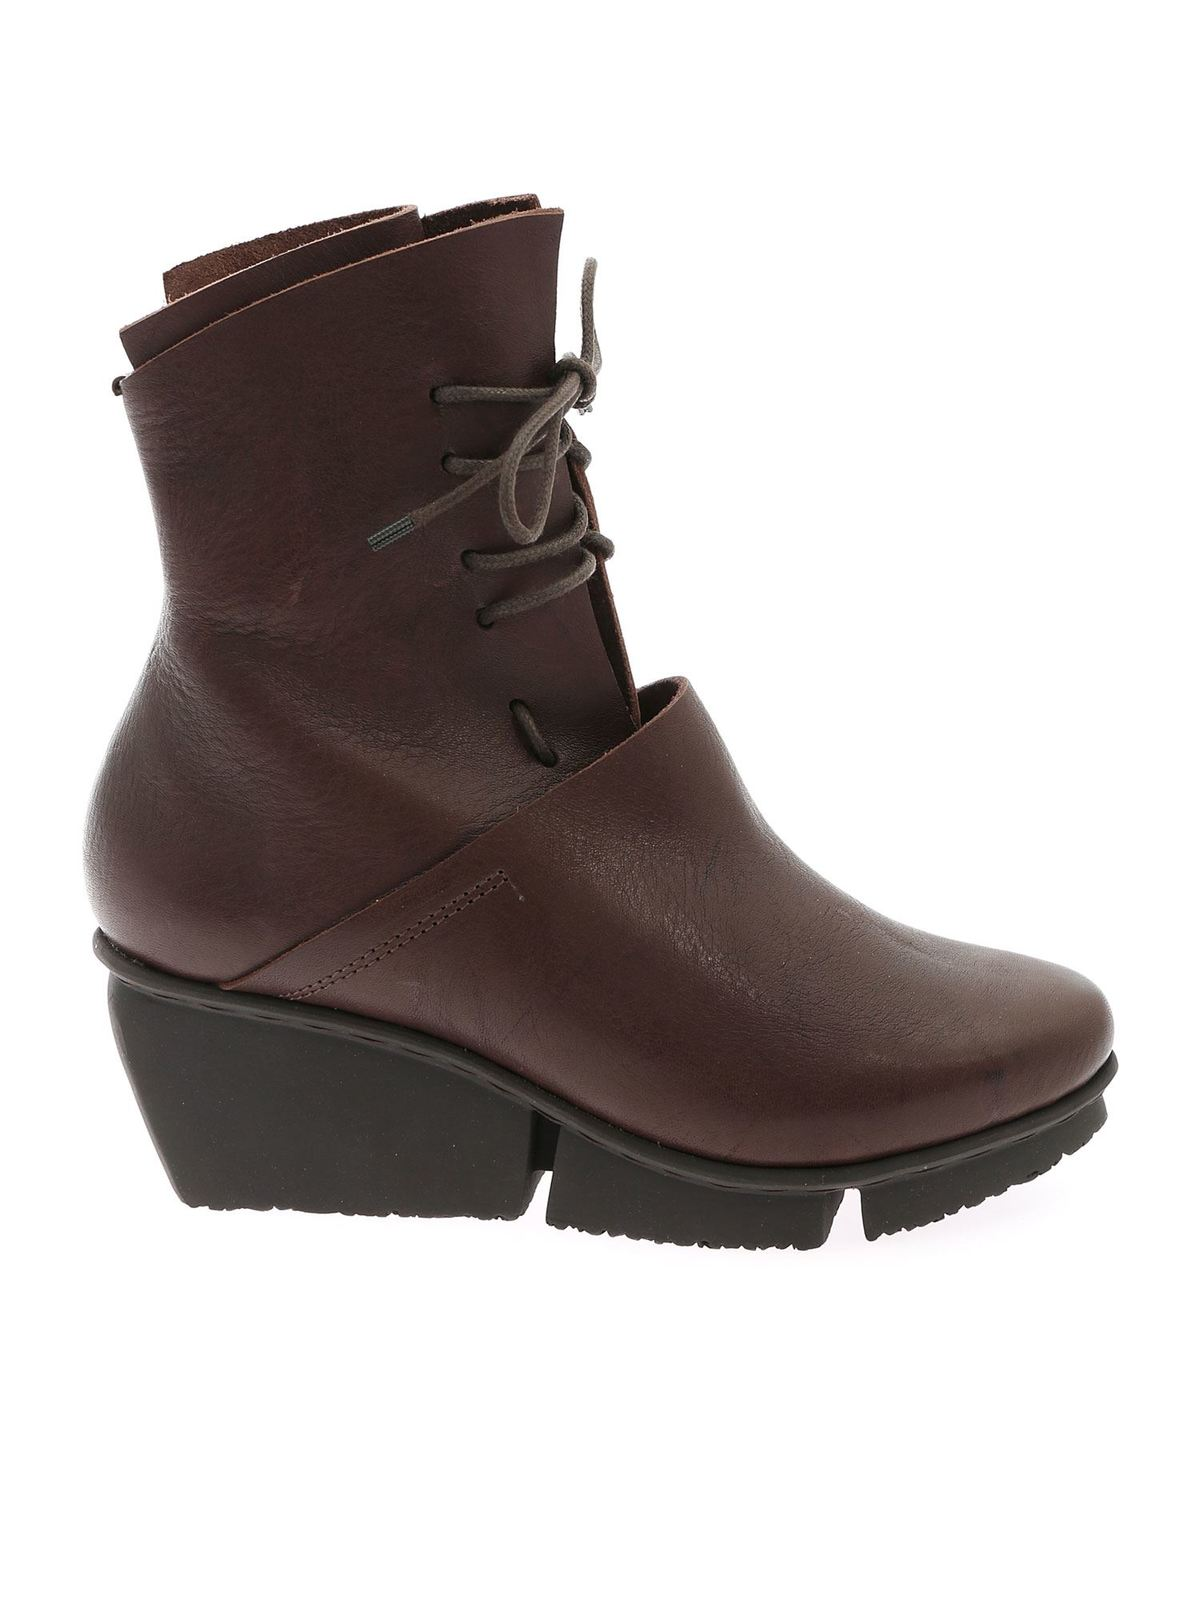 Trippen SHARE SHOES IN BROWN